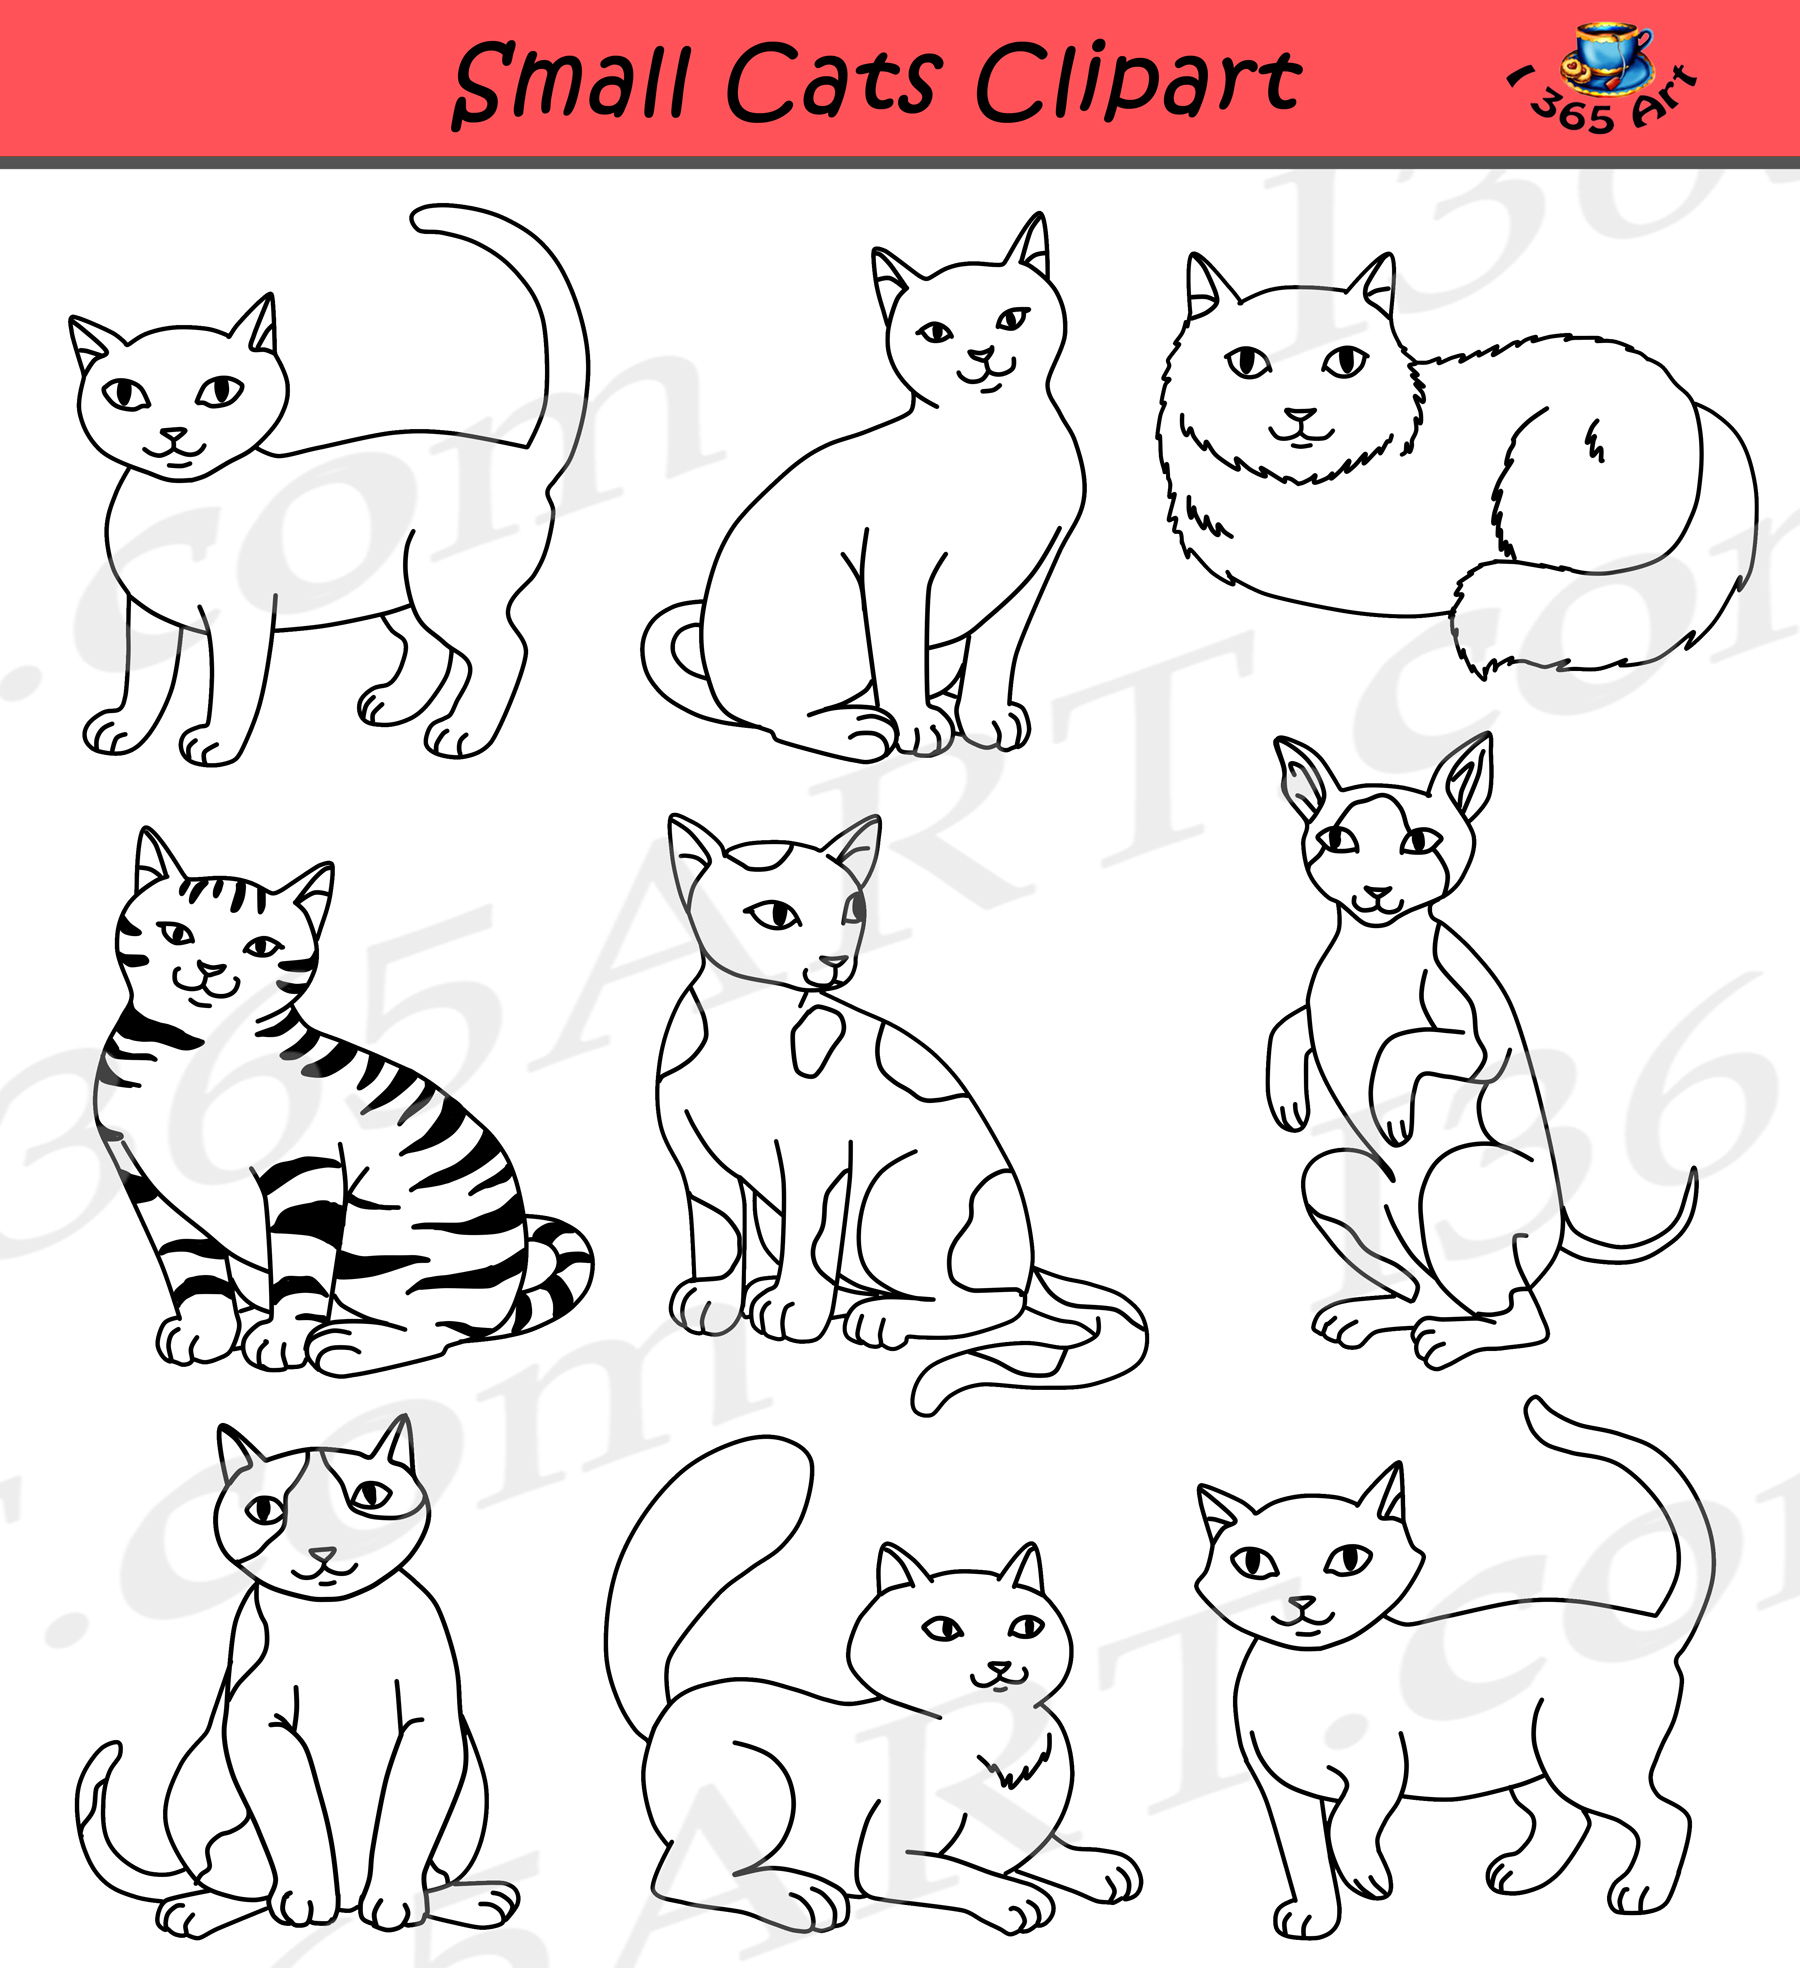 Small Cats Clipart.